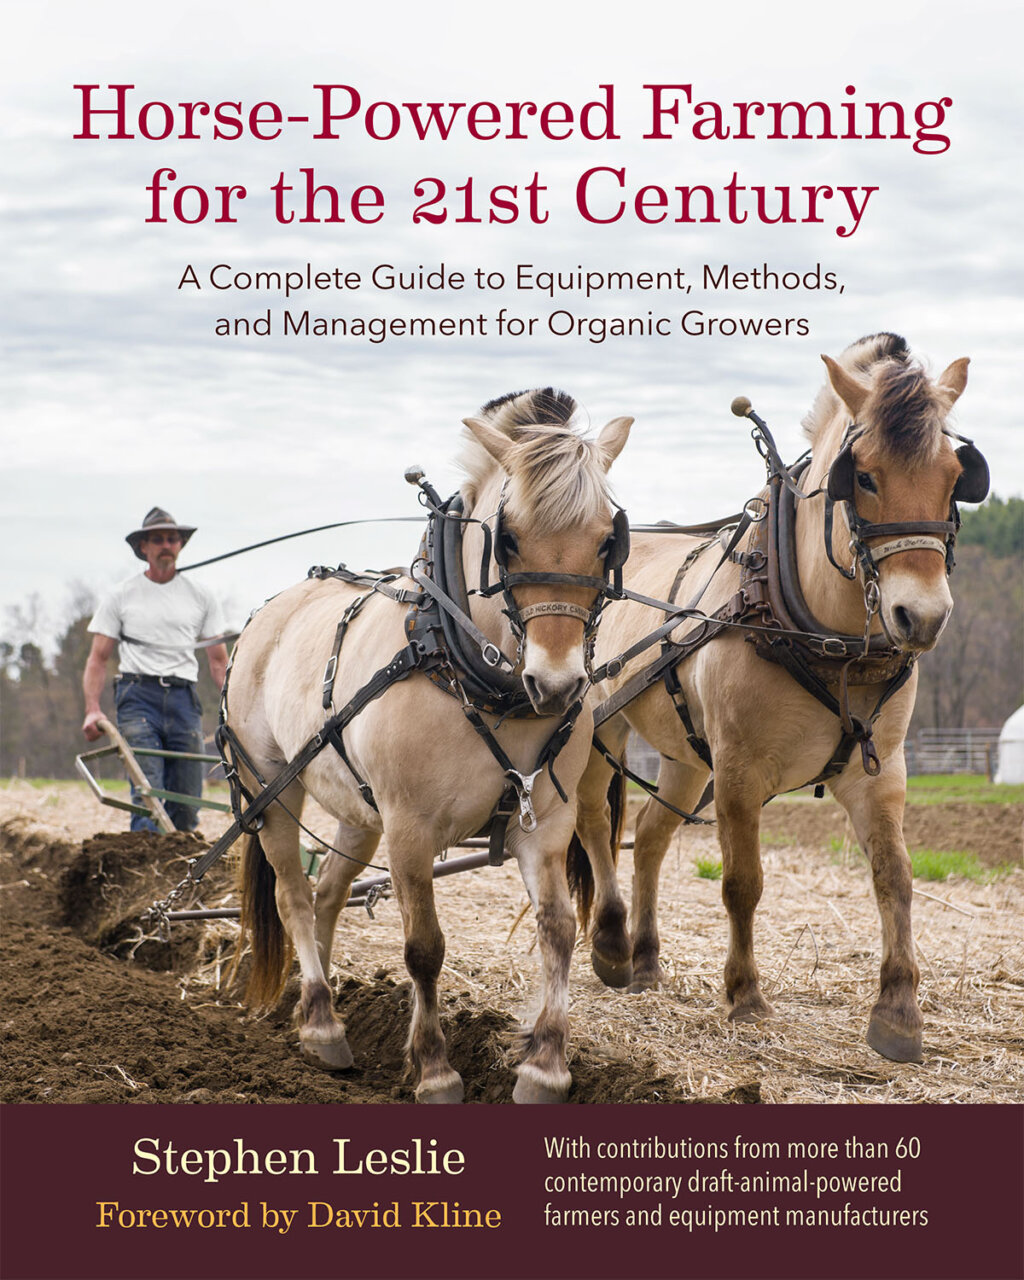 The Horse-Powered Farming for the 21st Century cover